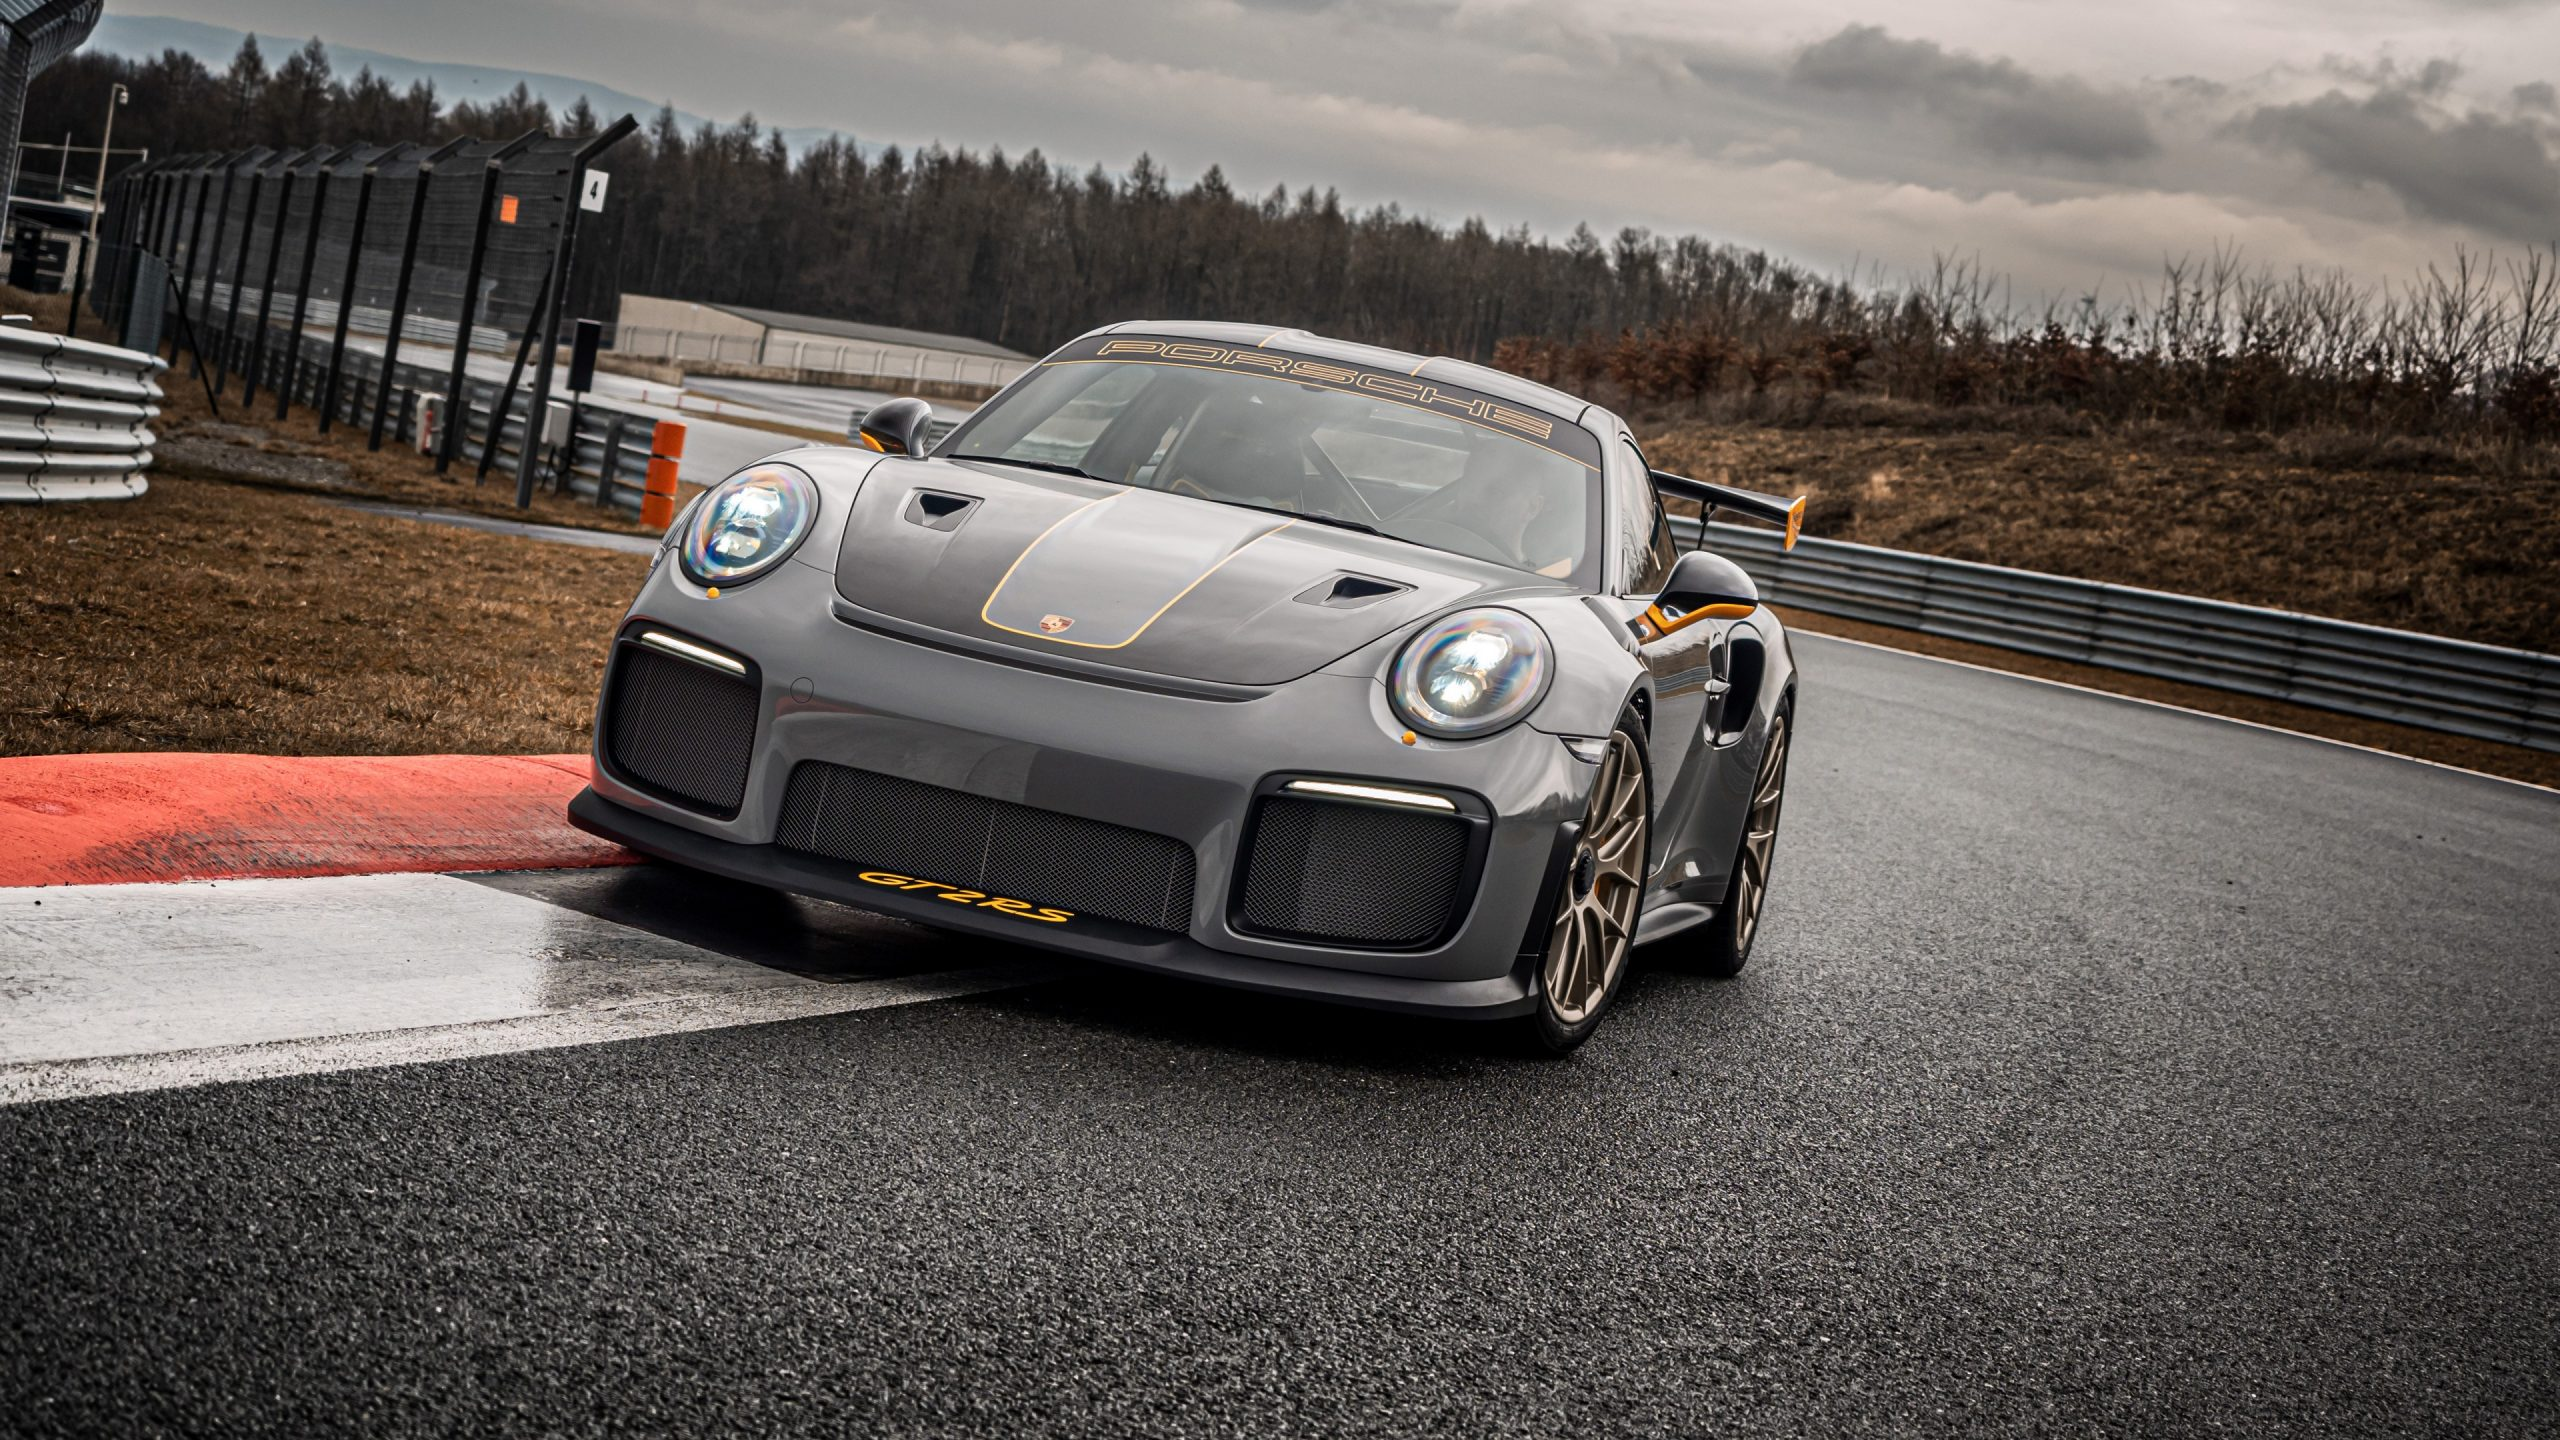 edo competition porsche 911 gt2 rs 2020 5k